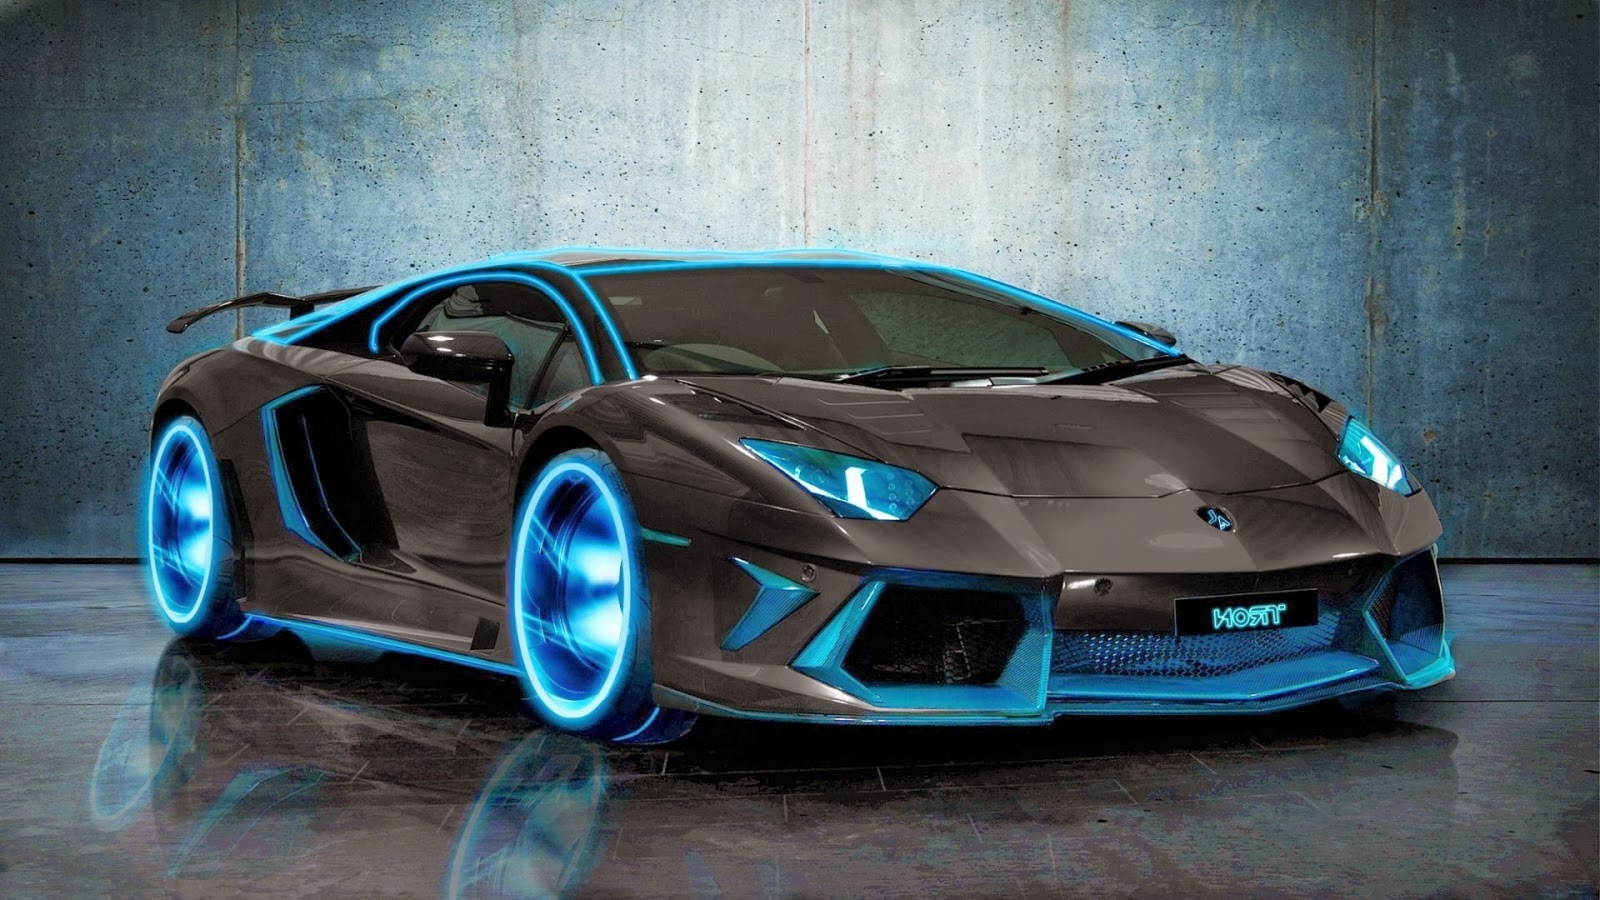 reveal prices news gallery aventador lamborghini confirmed unveils s oz used